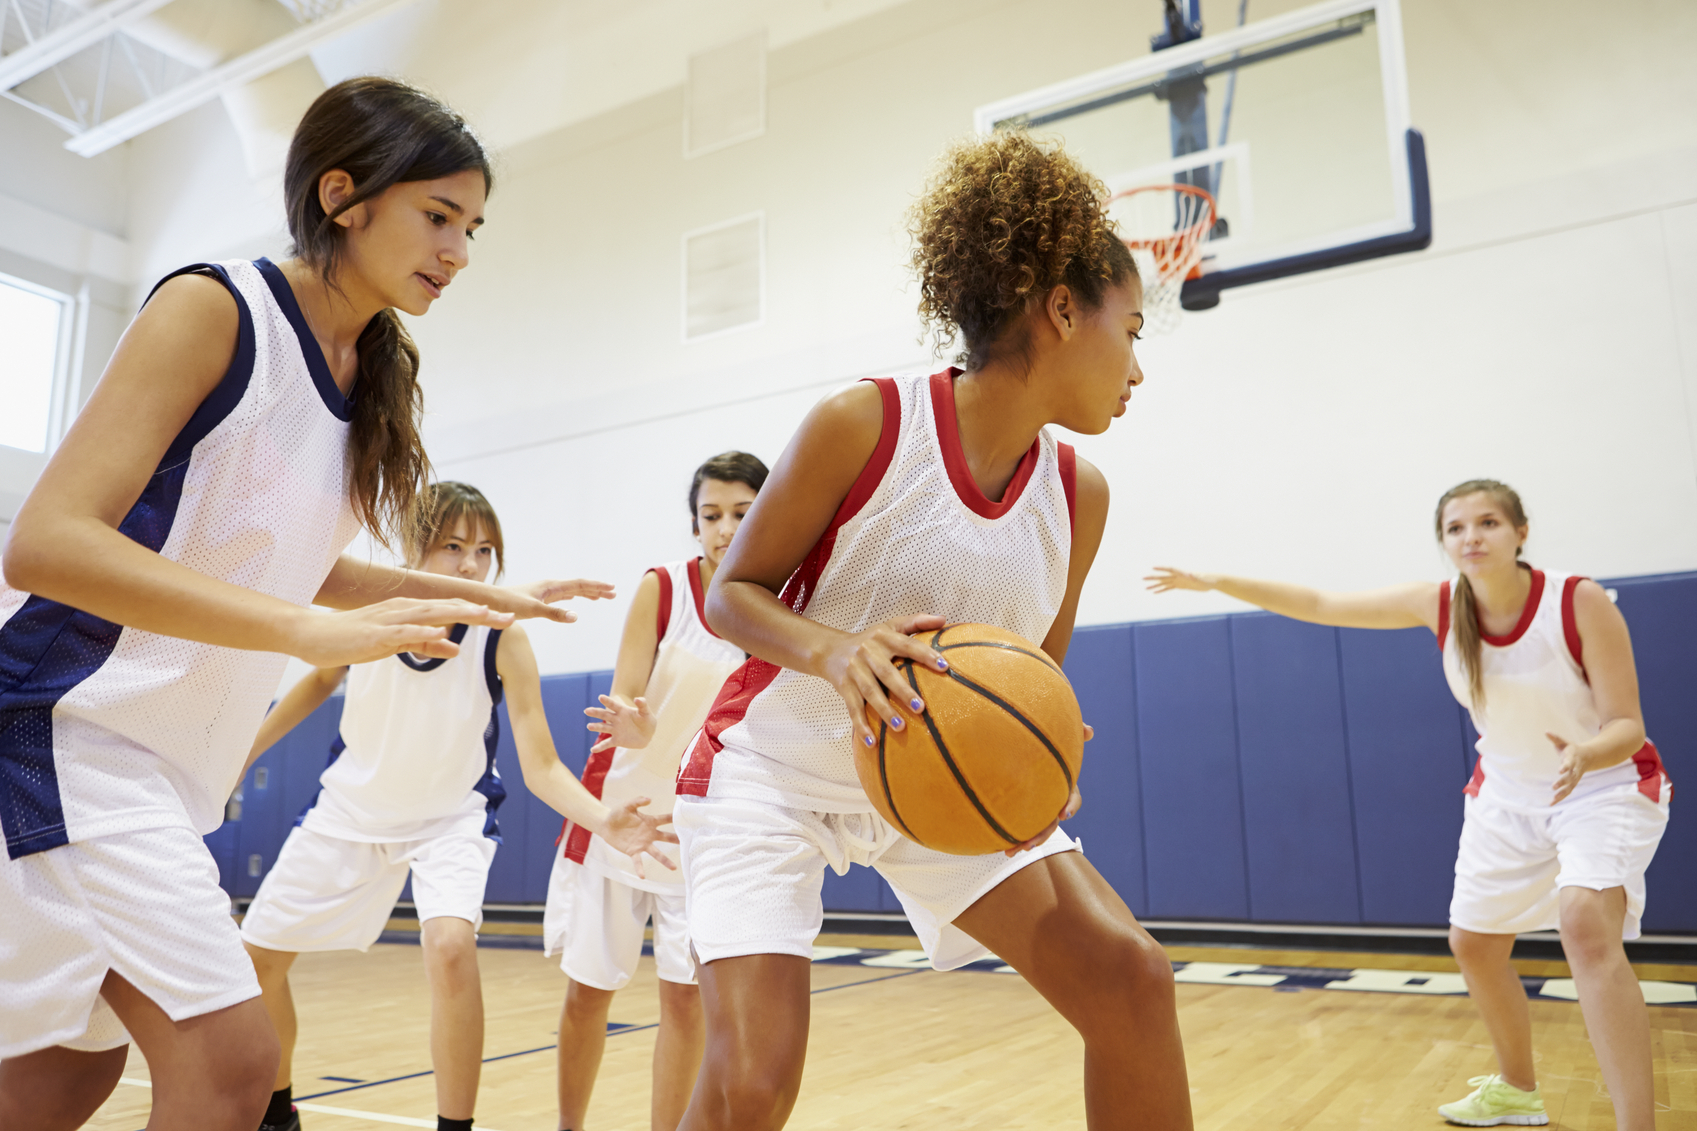 Can Exercise Help Relieve Teen Depression